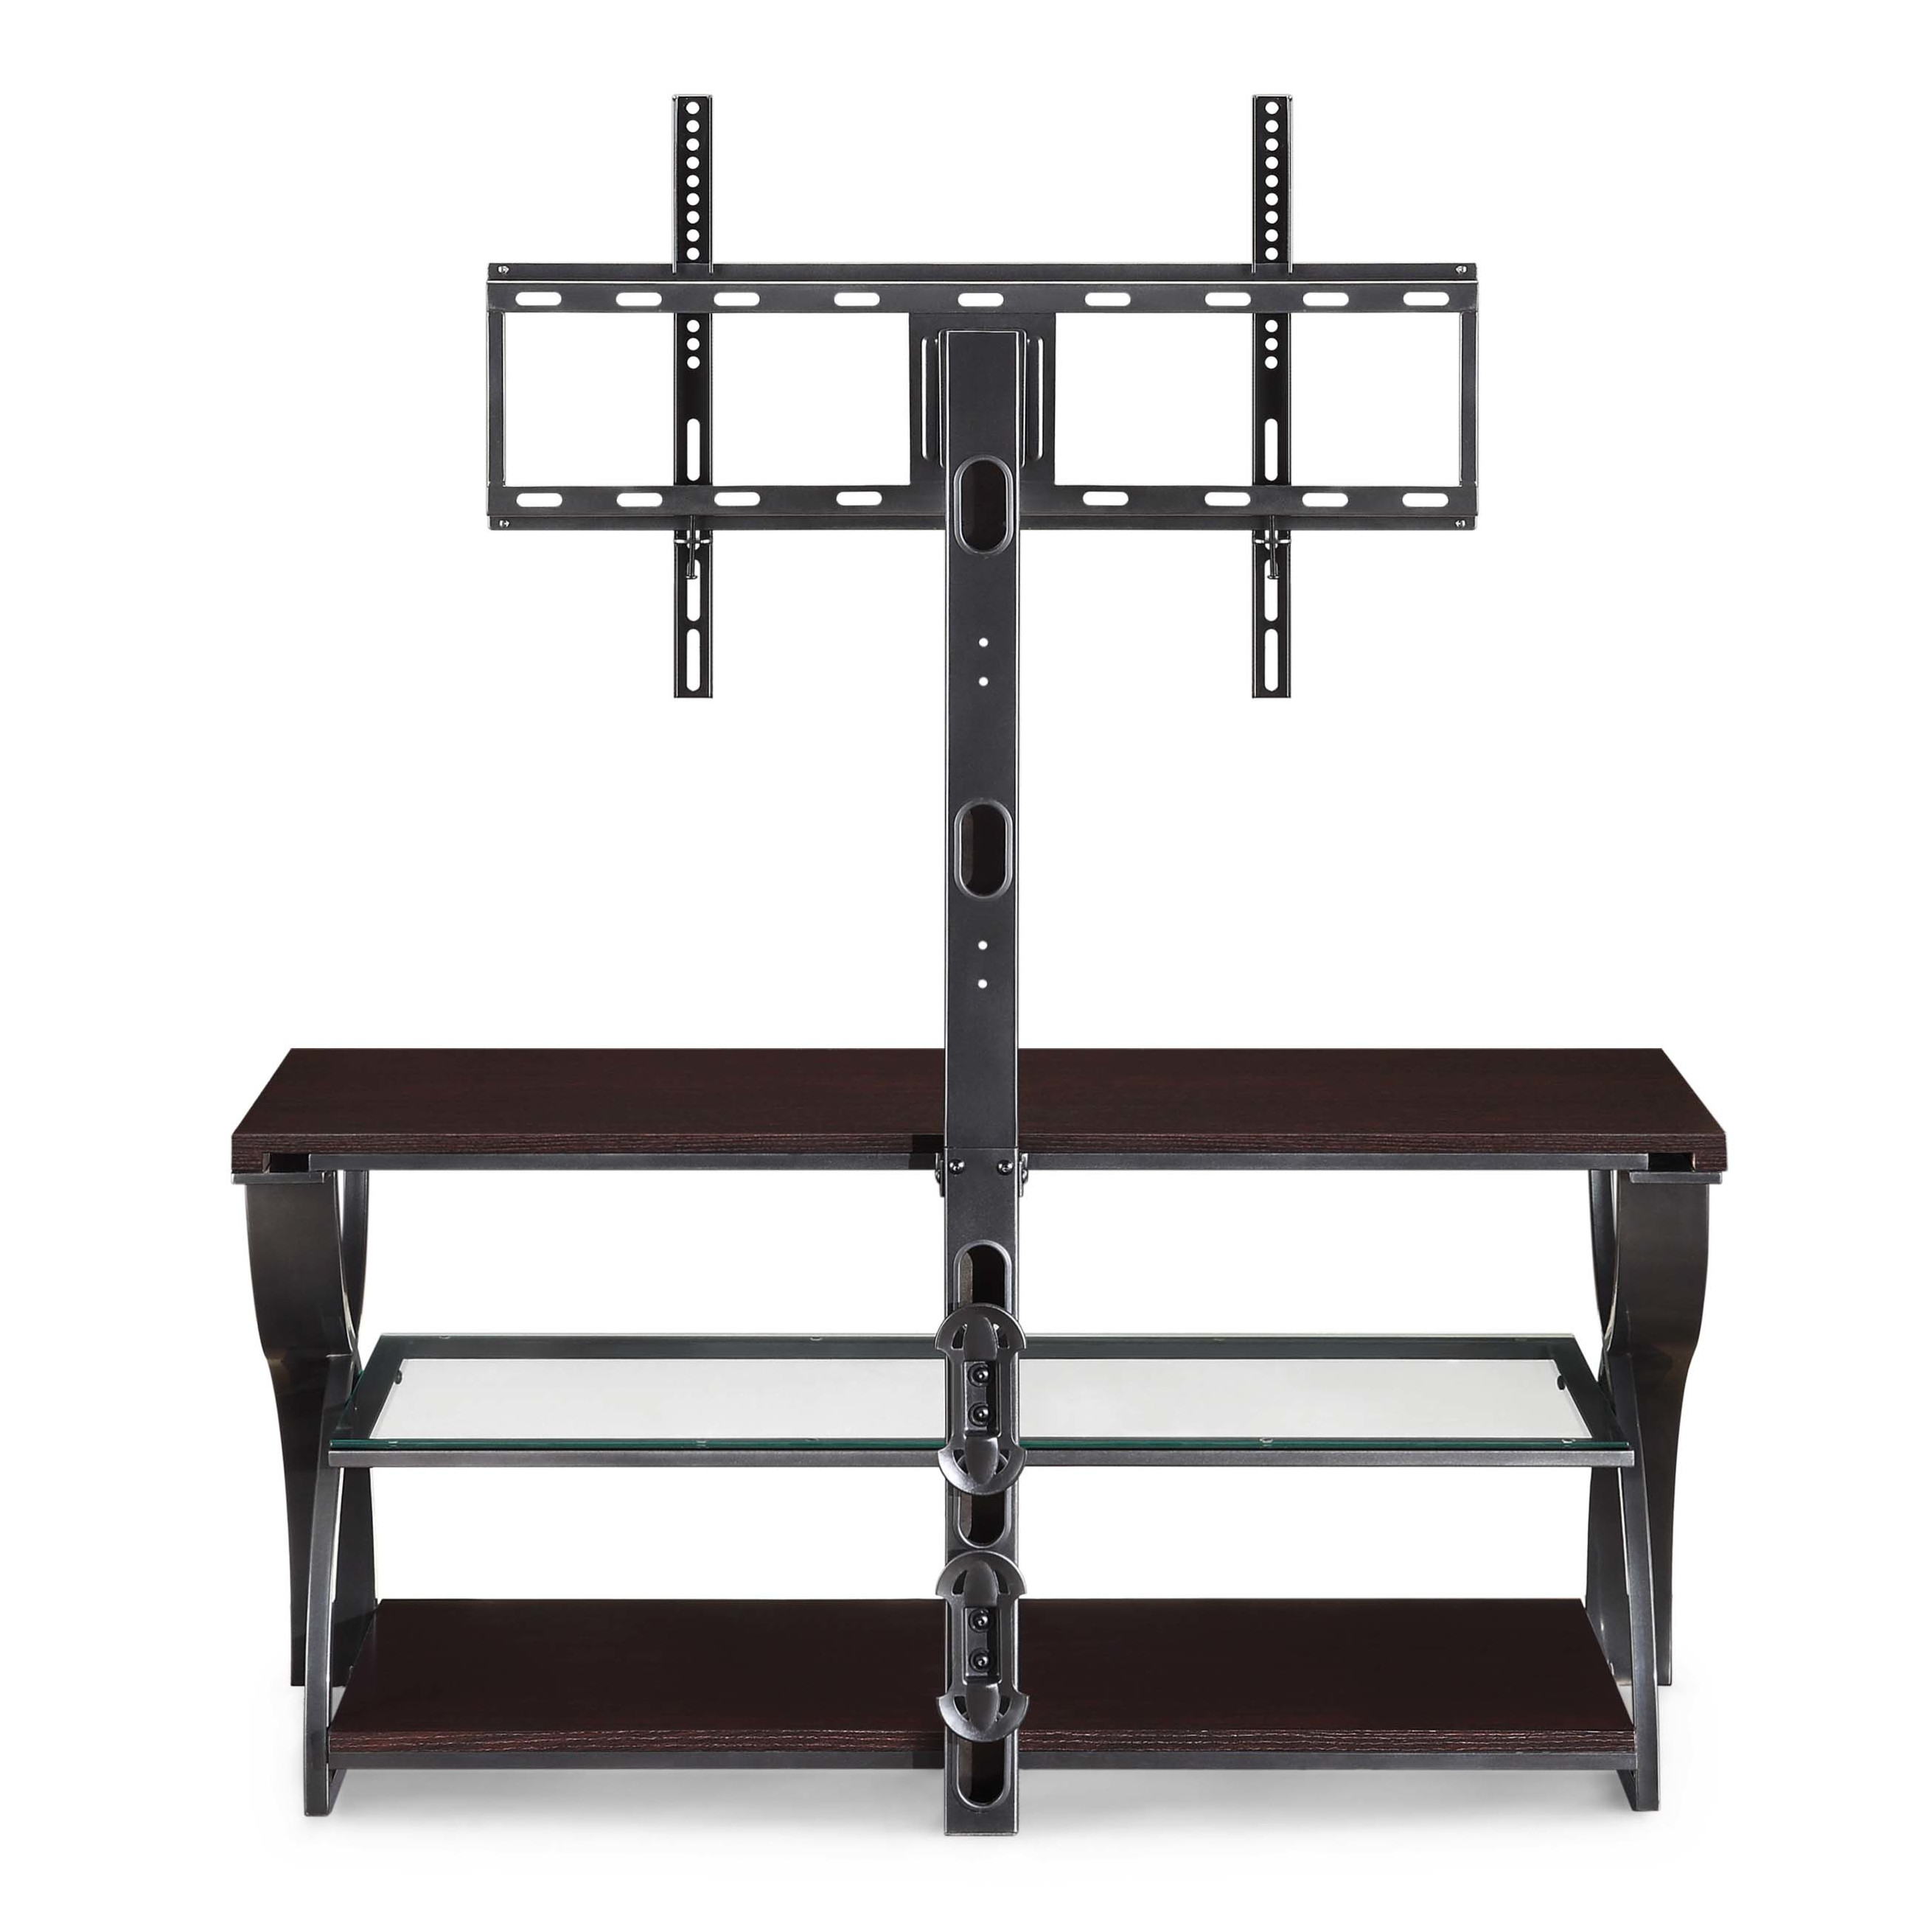 Elegant whalen tv stand for home furniture design with whalen 3-in-1 tv stand